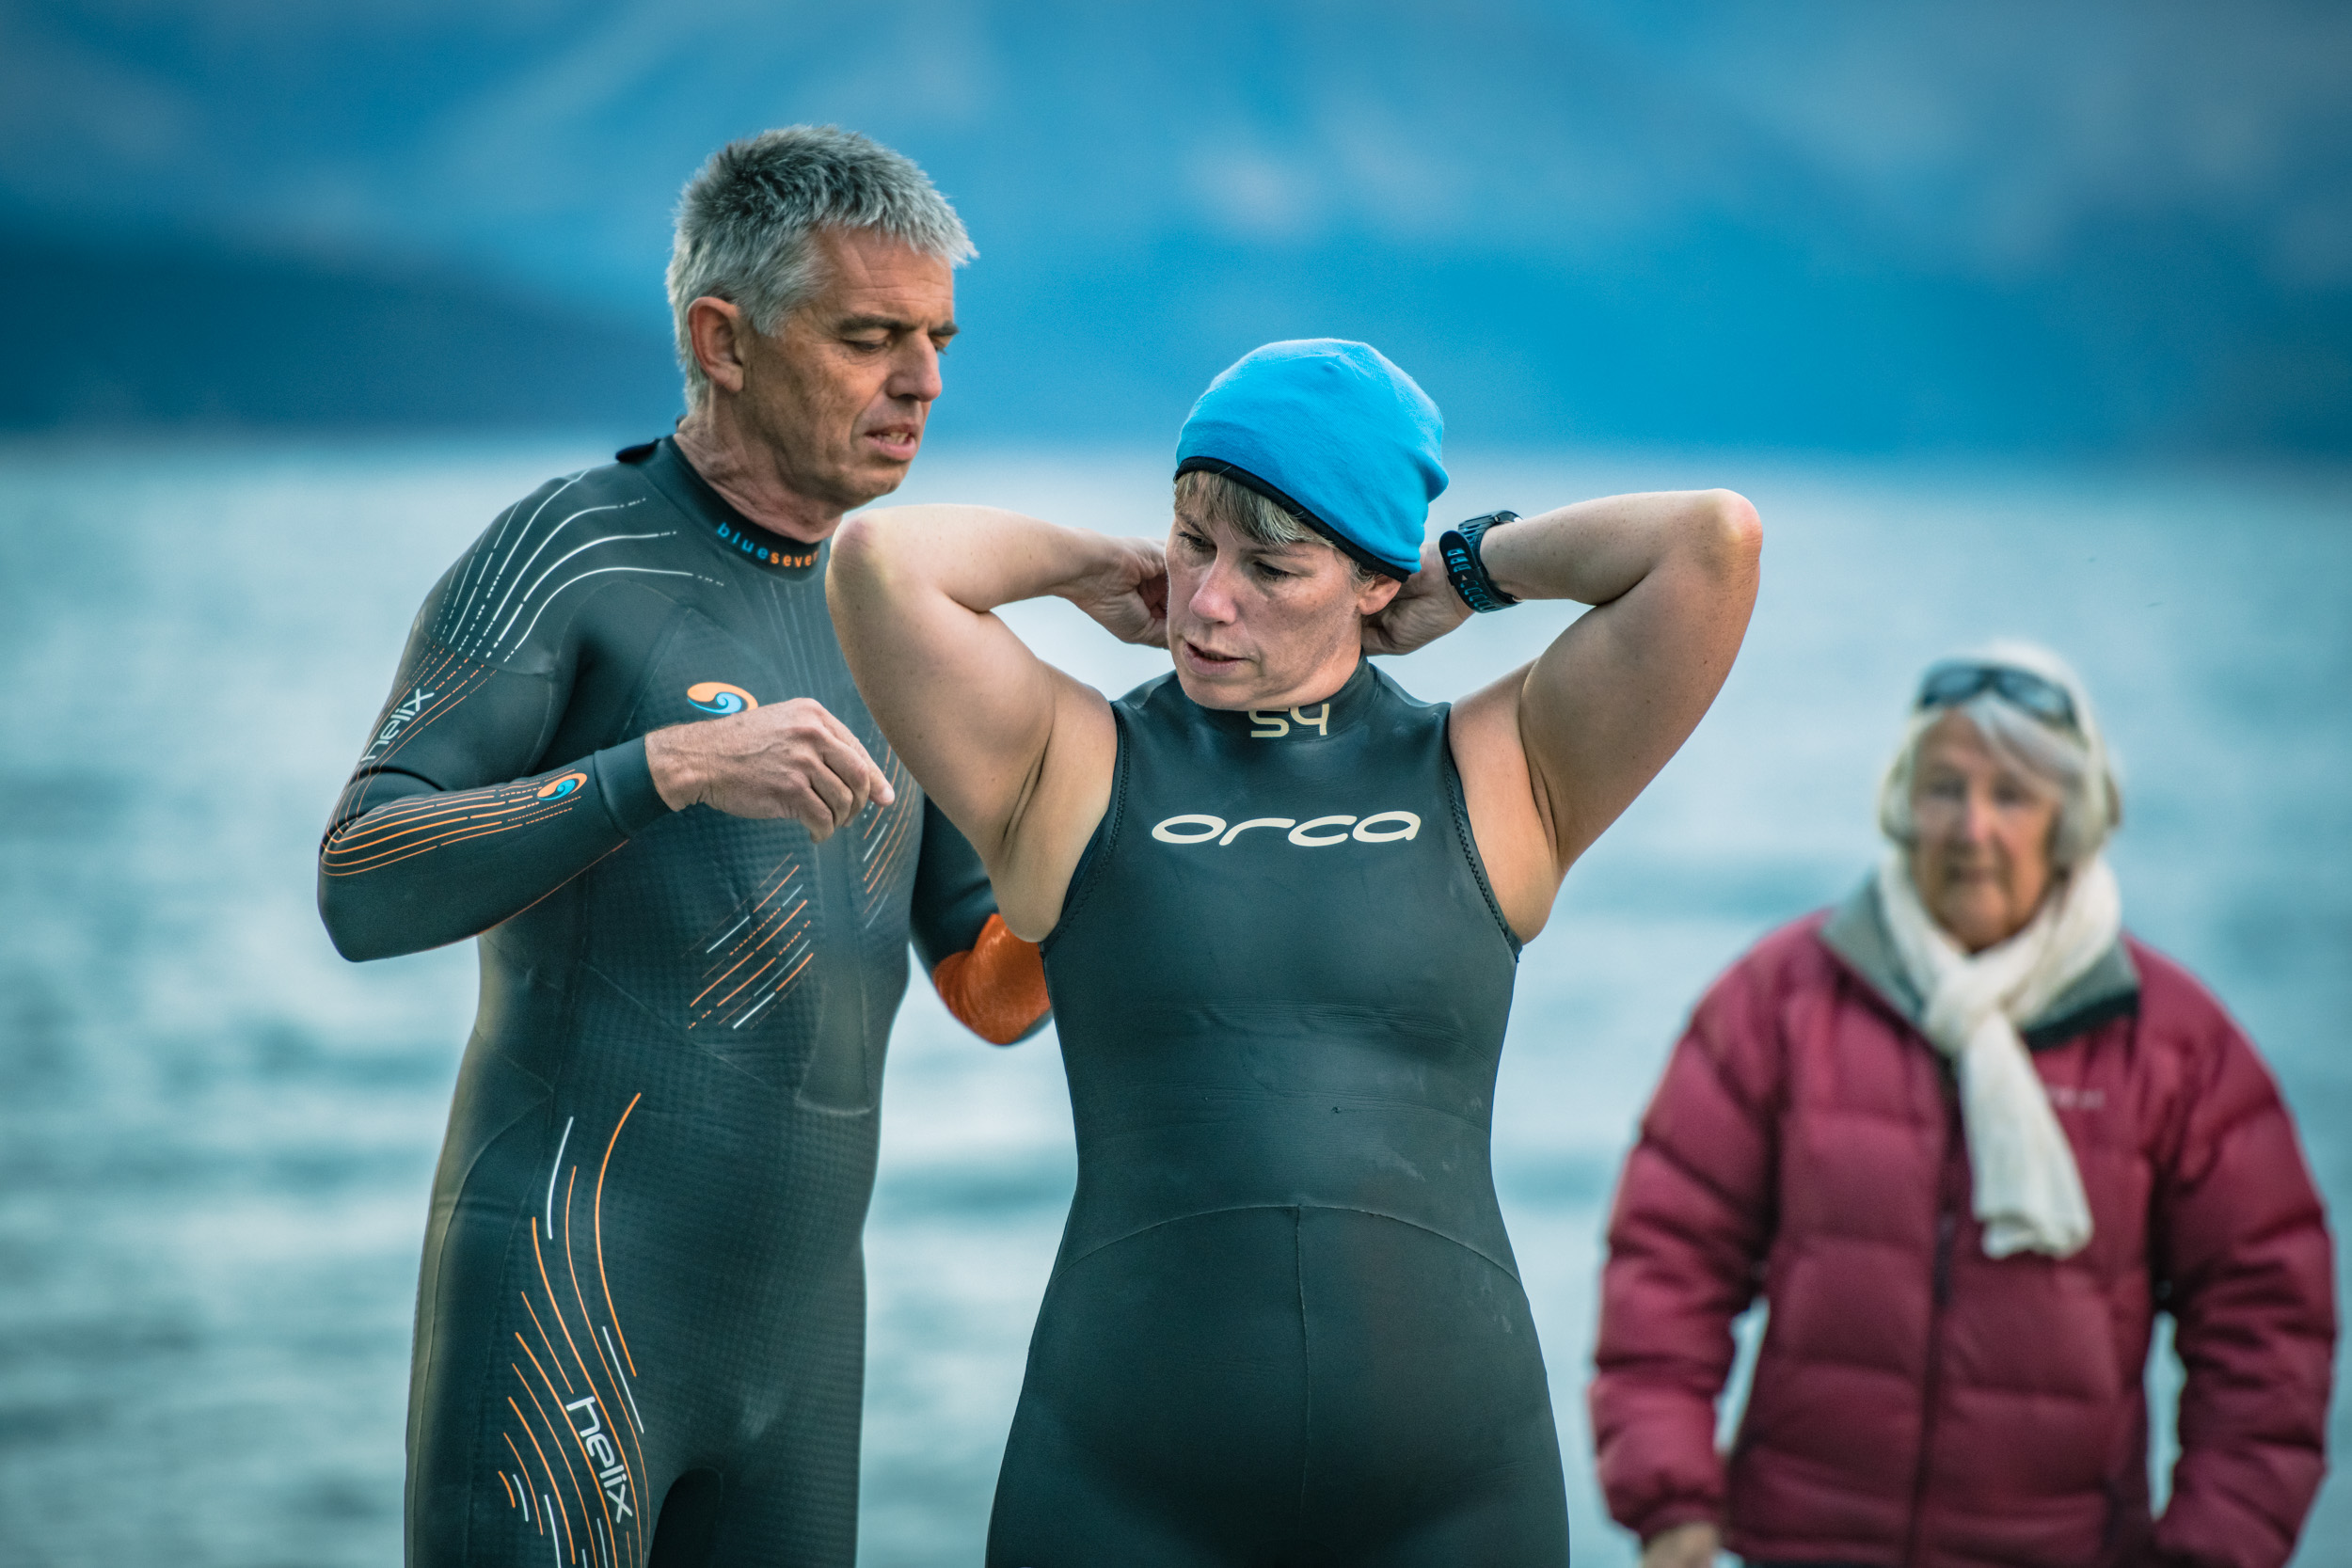 Zipping up wetsuits at Lake Wanaka - Professional Sport Event Photography